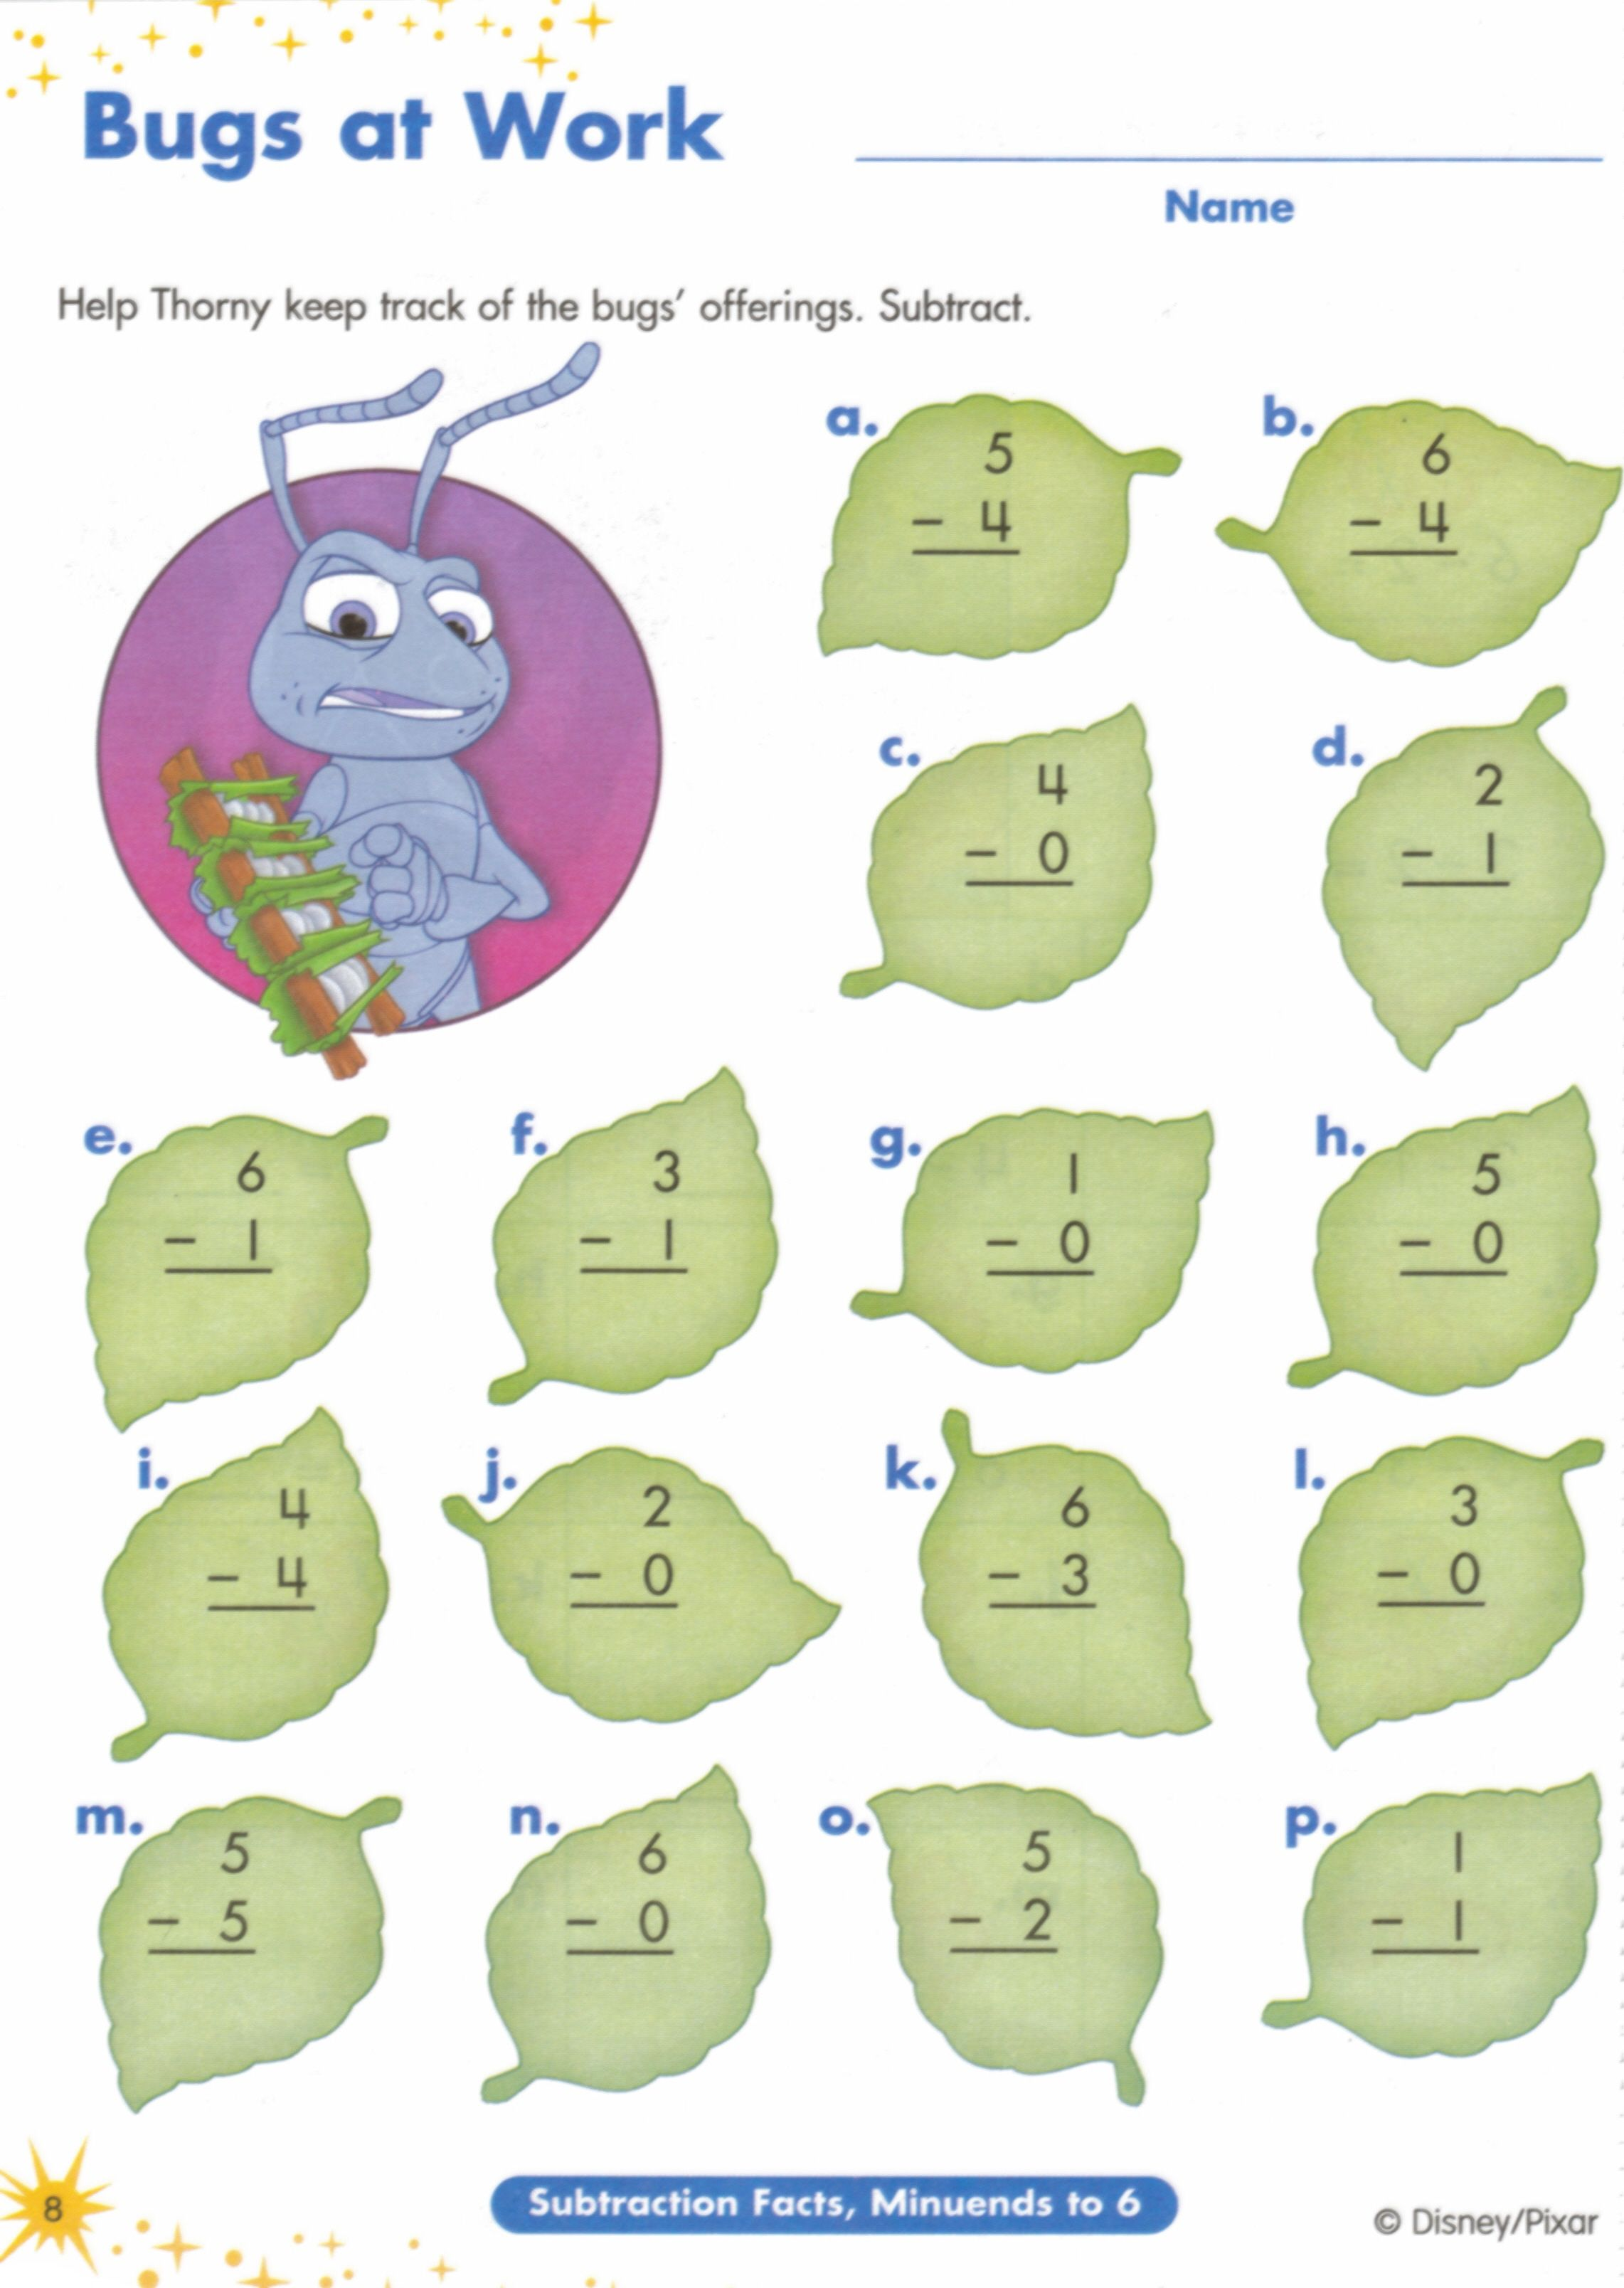 Proatmealus  Outstanding  Images About Worksheets On Pinterest  Fun Facts For Kids  With Gorgeous  Images About Worksheets On Pinterest  Fun Facts For Kids Earth Day Worksheets And Jungles With Beautiful Civil War Printable Worksheets Also Narrative Elements Worksheets In Addition At Word Family Worksheet And Learning English Worksheets For Adults As Well As Area Of A Sector Of A Circle Worksheet Additionally Hidden Pictures Worksheet From Pinterestcom With Proatmealus  Gorgeous  Images About Worksheets On Pinterest  Fun Facts For Kids  With Beautiful  Images About Worksheets On Pinterest  Fun Facts For Kids Earth Day Worksheets And Jungles And Outstanding Civil War Printable Worksheets Also Narrative Elements Worksheets In Addition At Word Family Worksheet From Pinterestcom